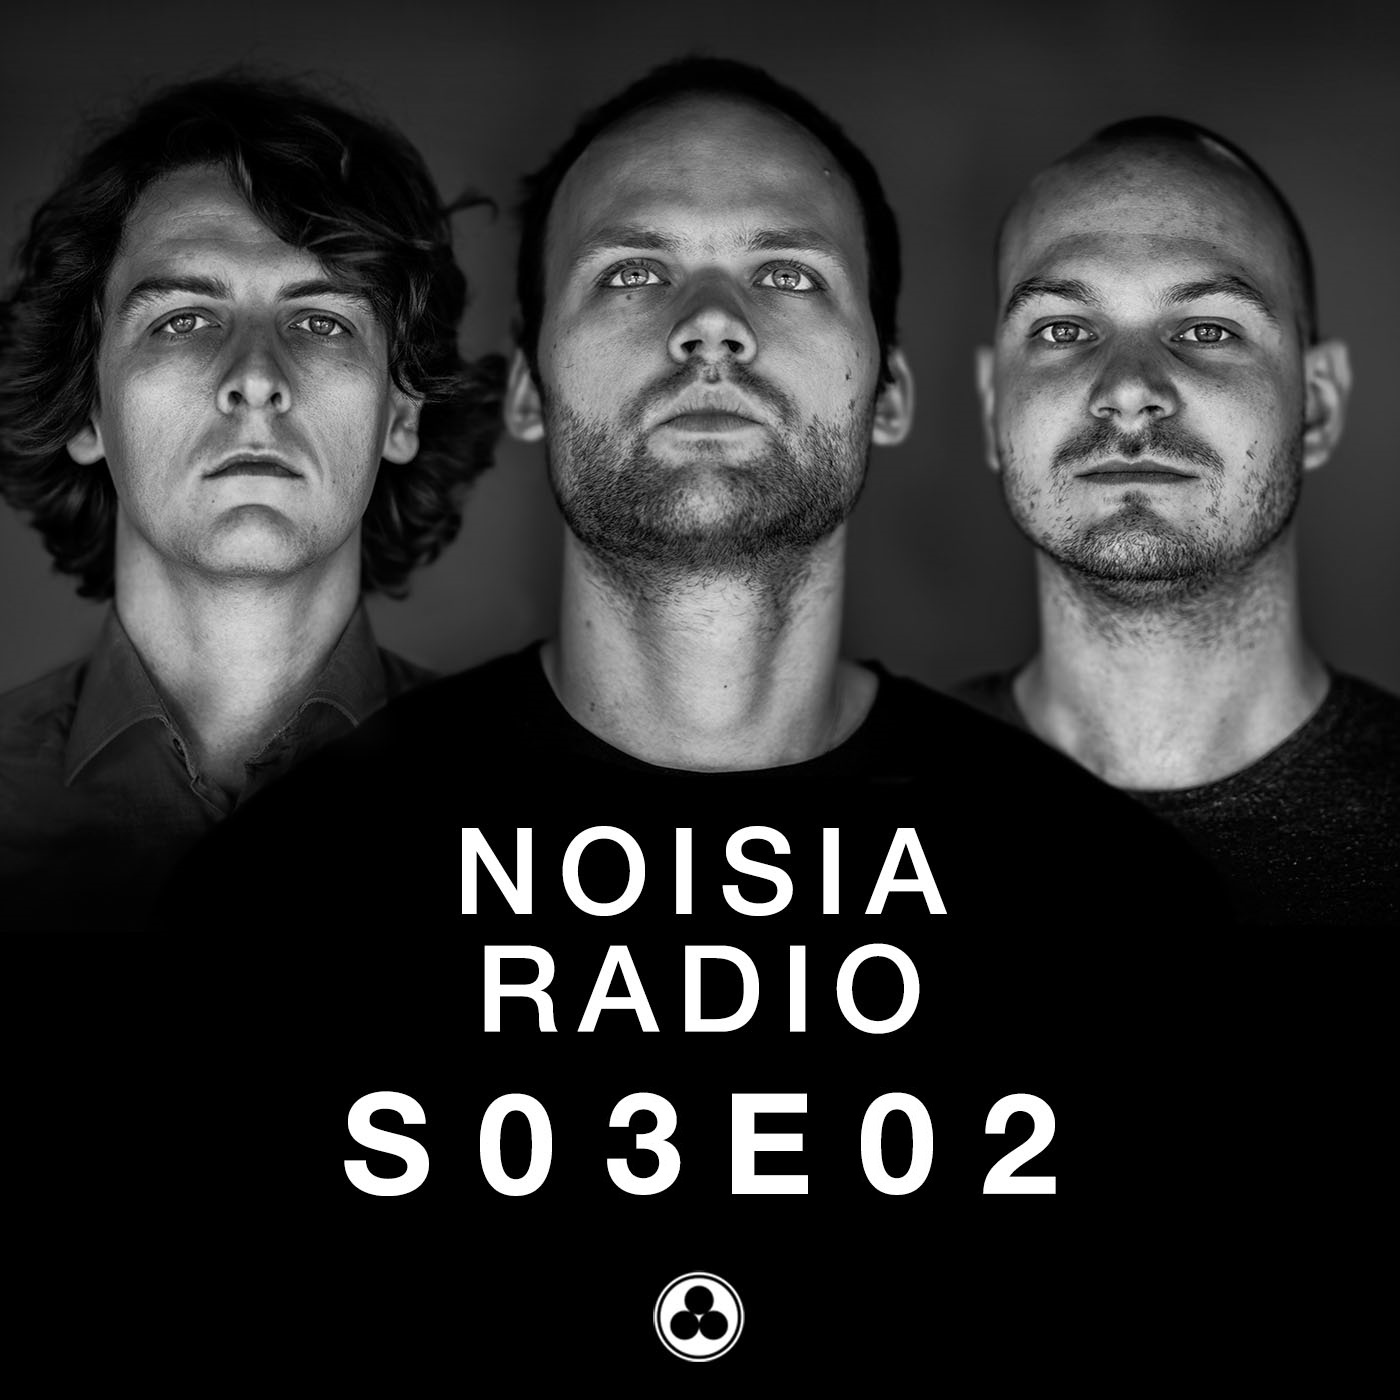 Noisia Radio S03E02